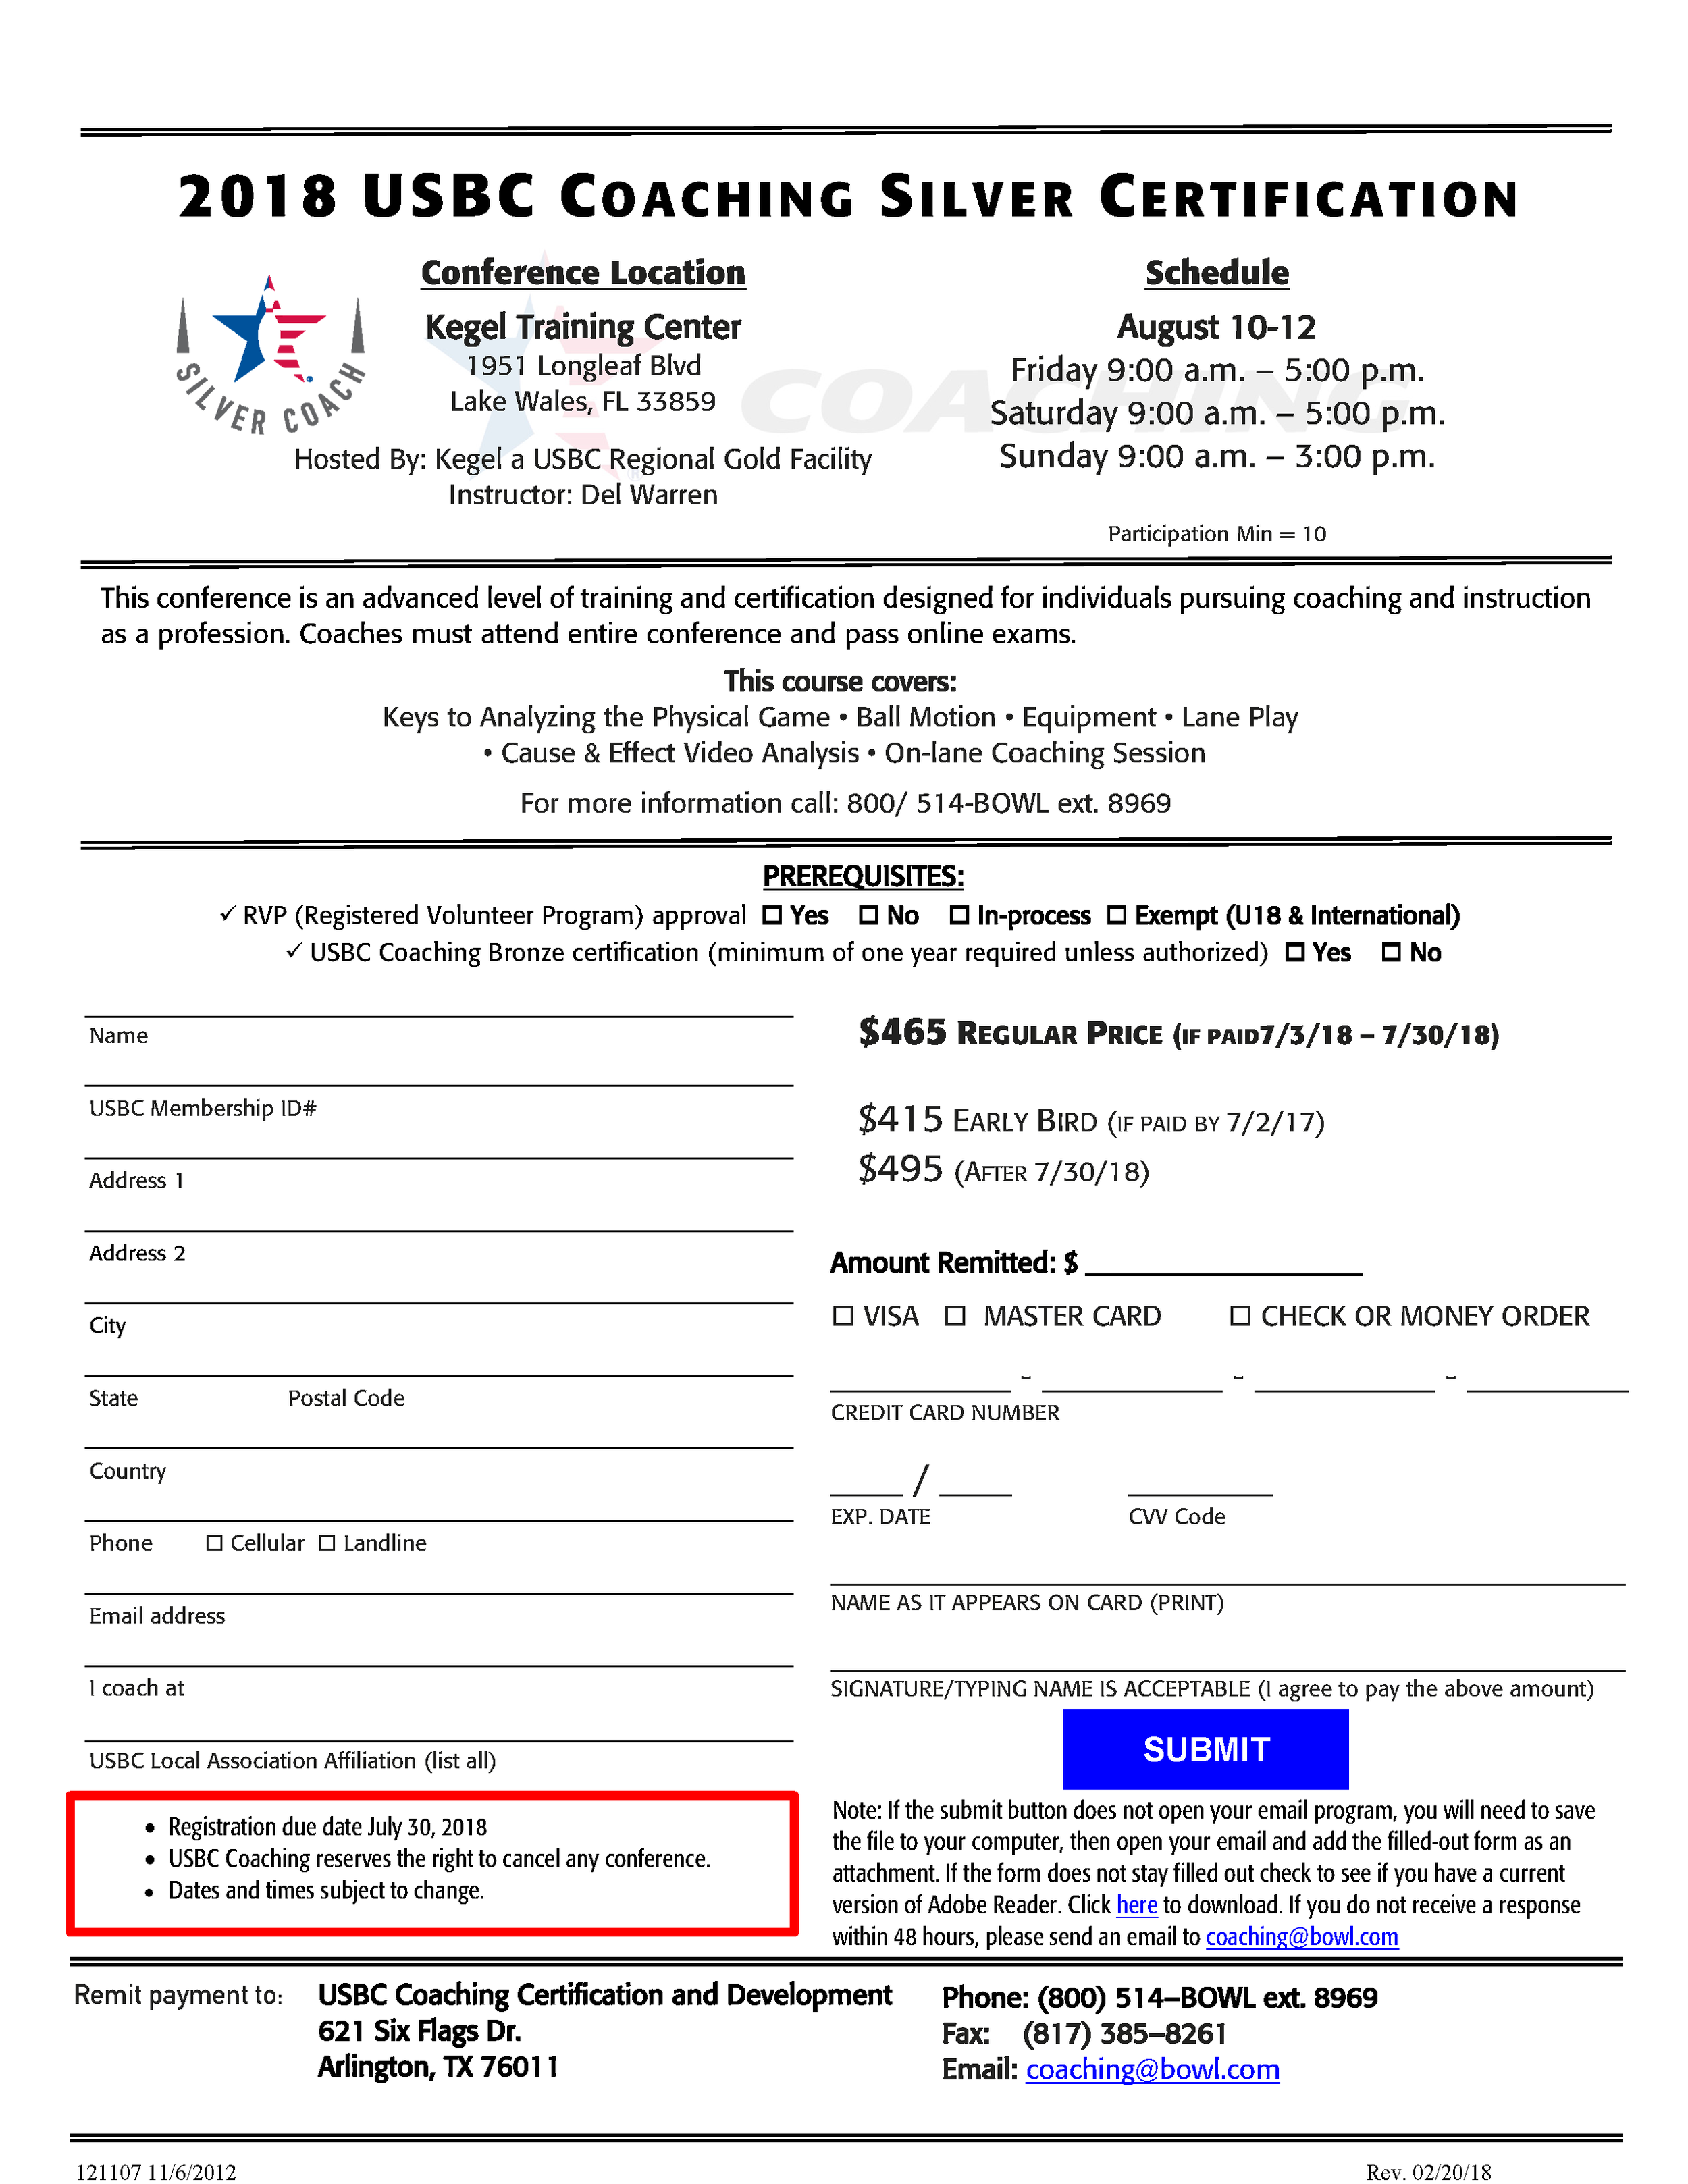 8_10_18 Lake Wales FL Silver  Registration Form_Fill-in.png